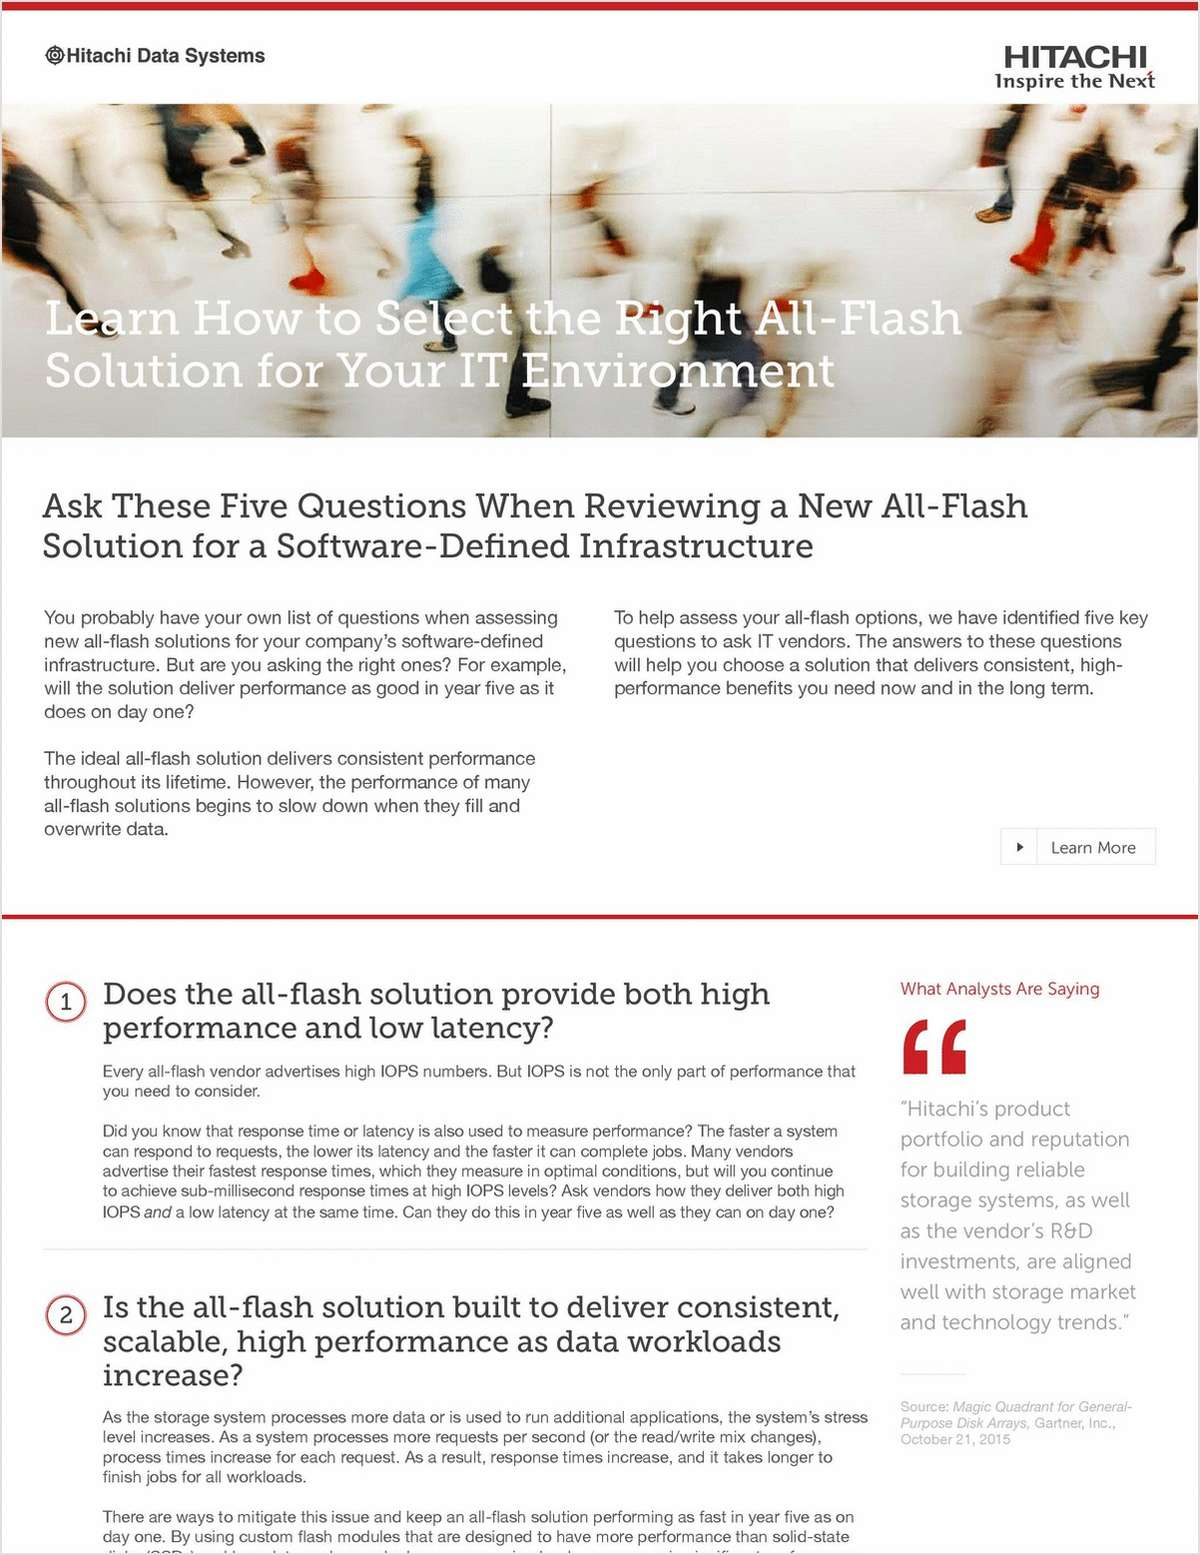 Learn How to Select the Right All-Flash Solution for Your IT Environment